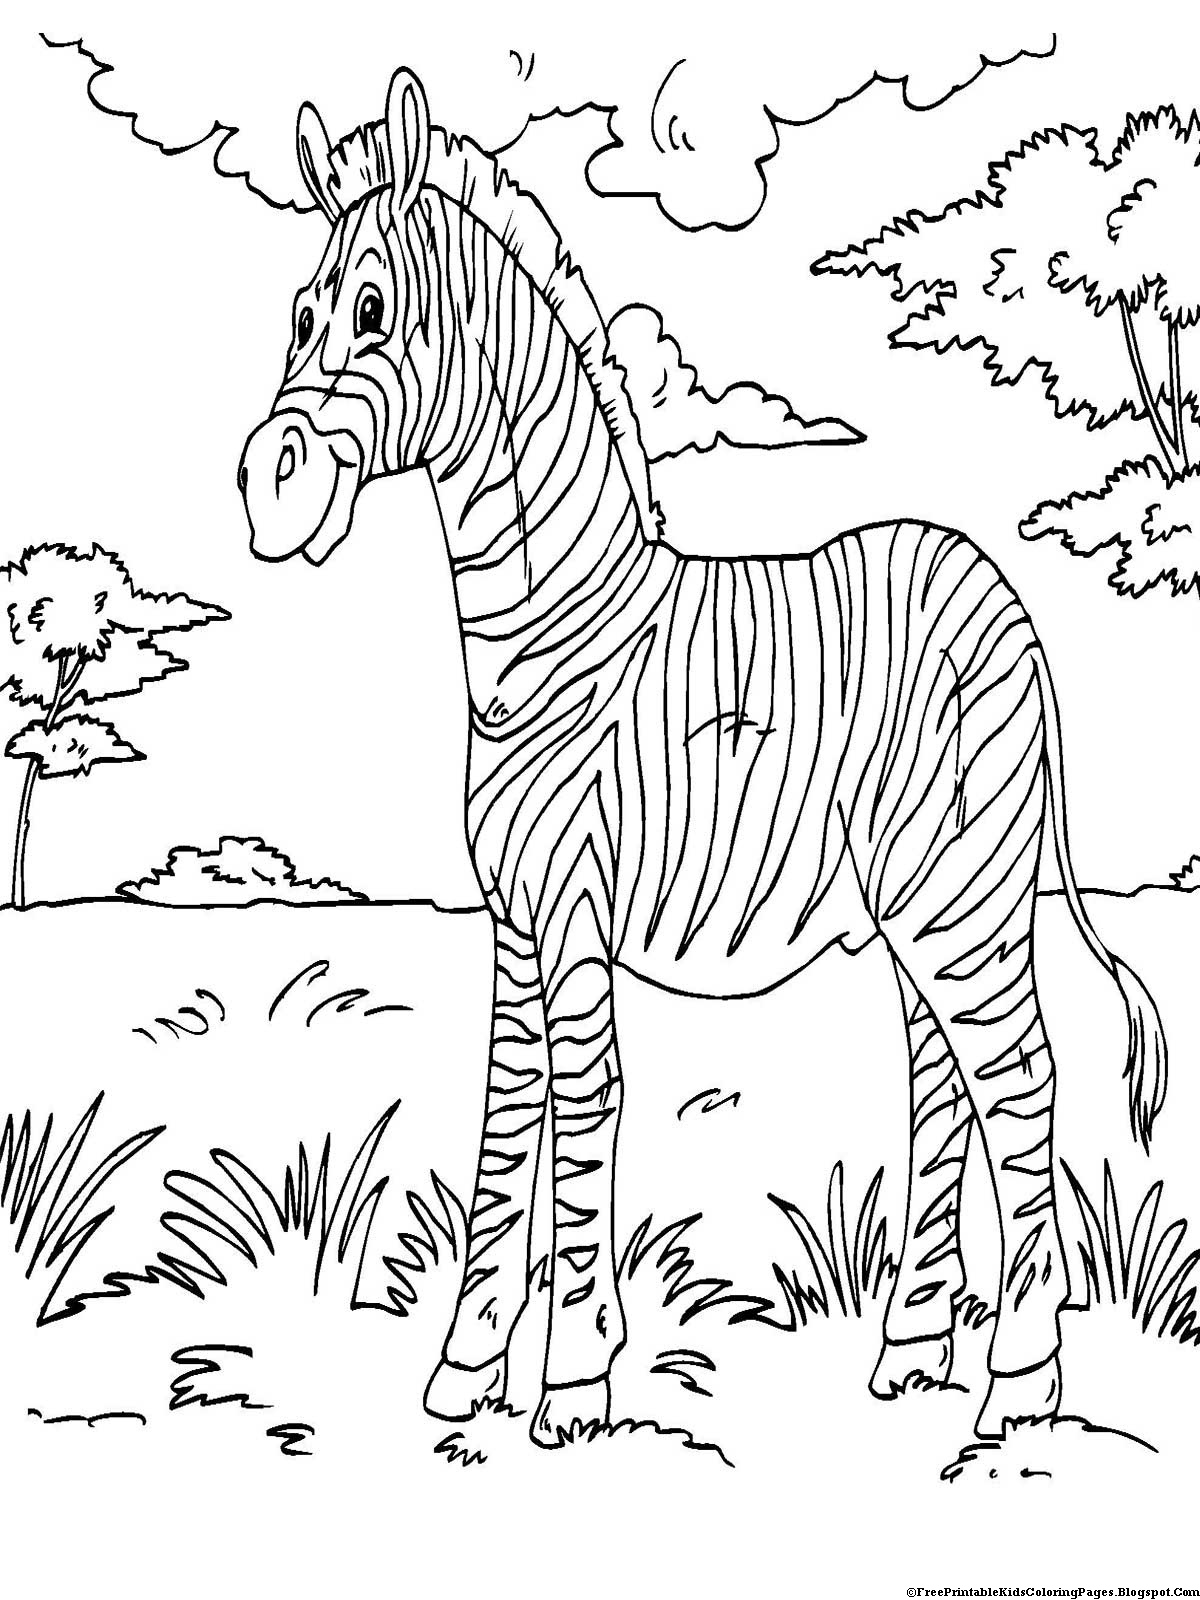 coloring pages for kids online monster inc coloring pages to download and print for free kids coloring online pages for